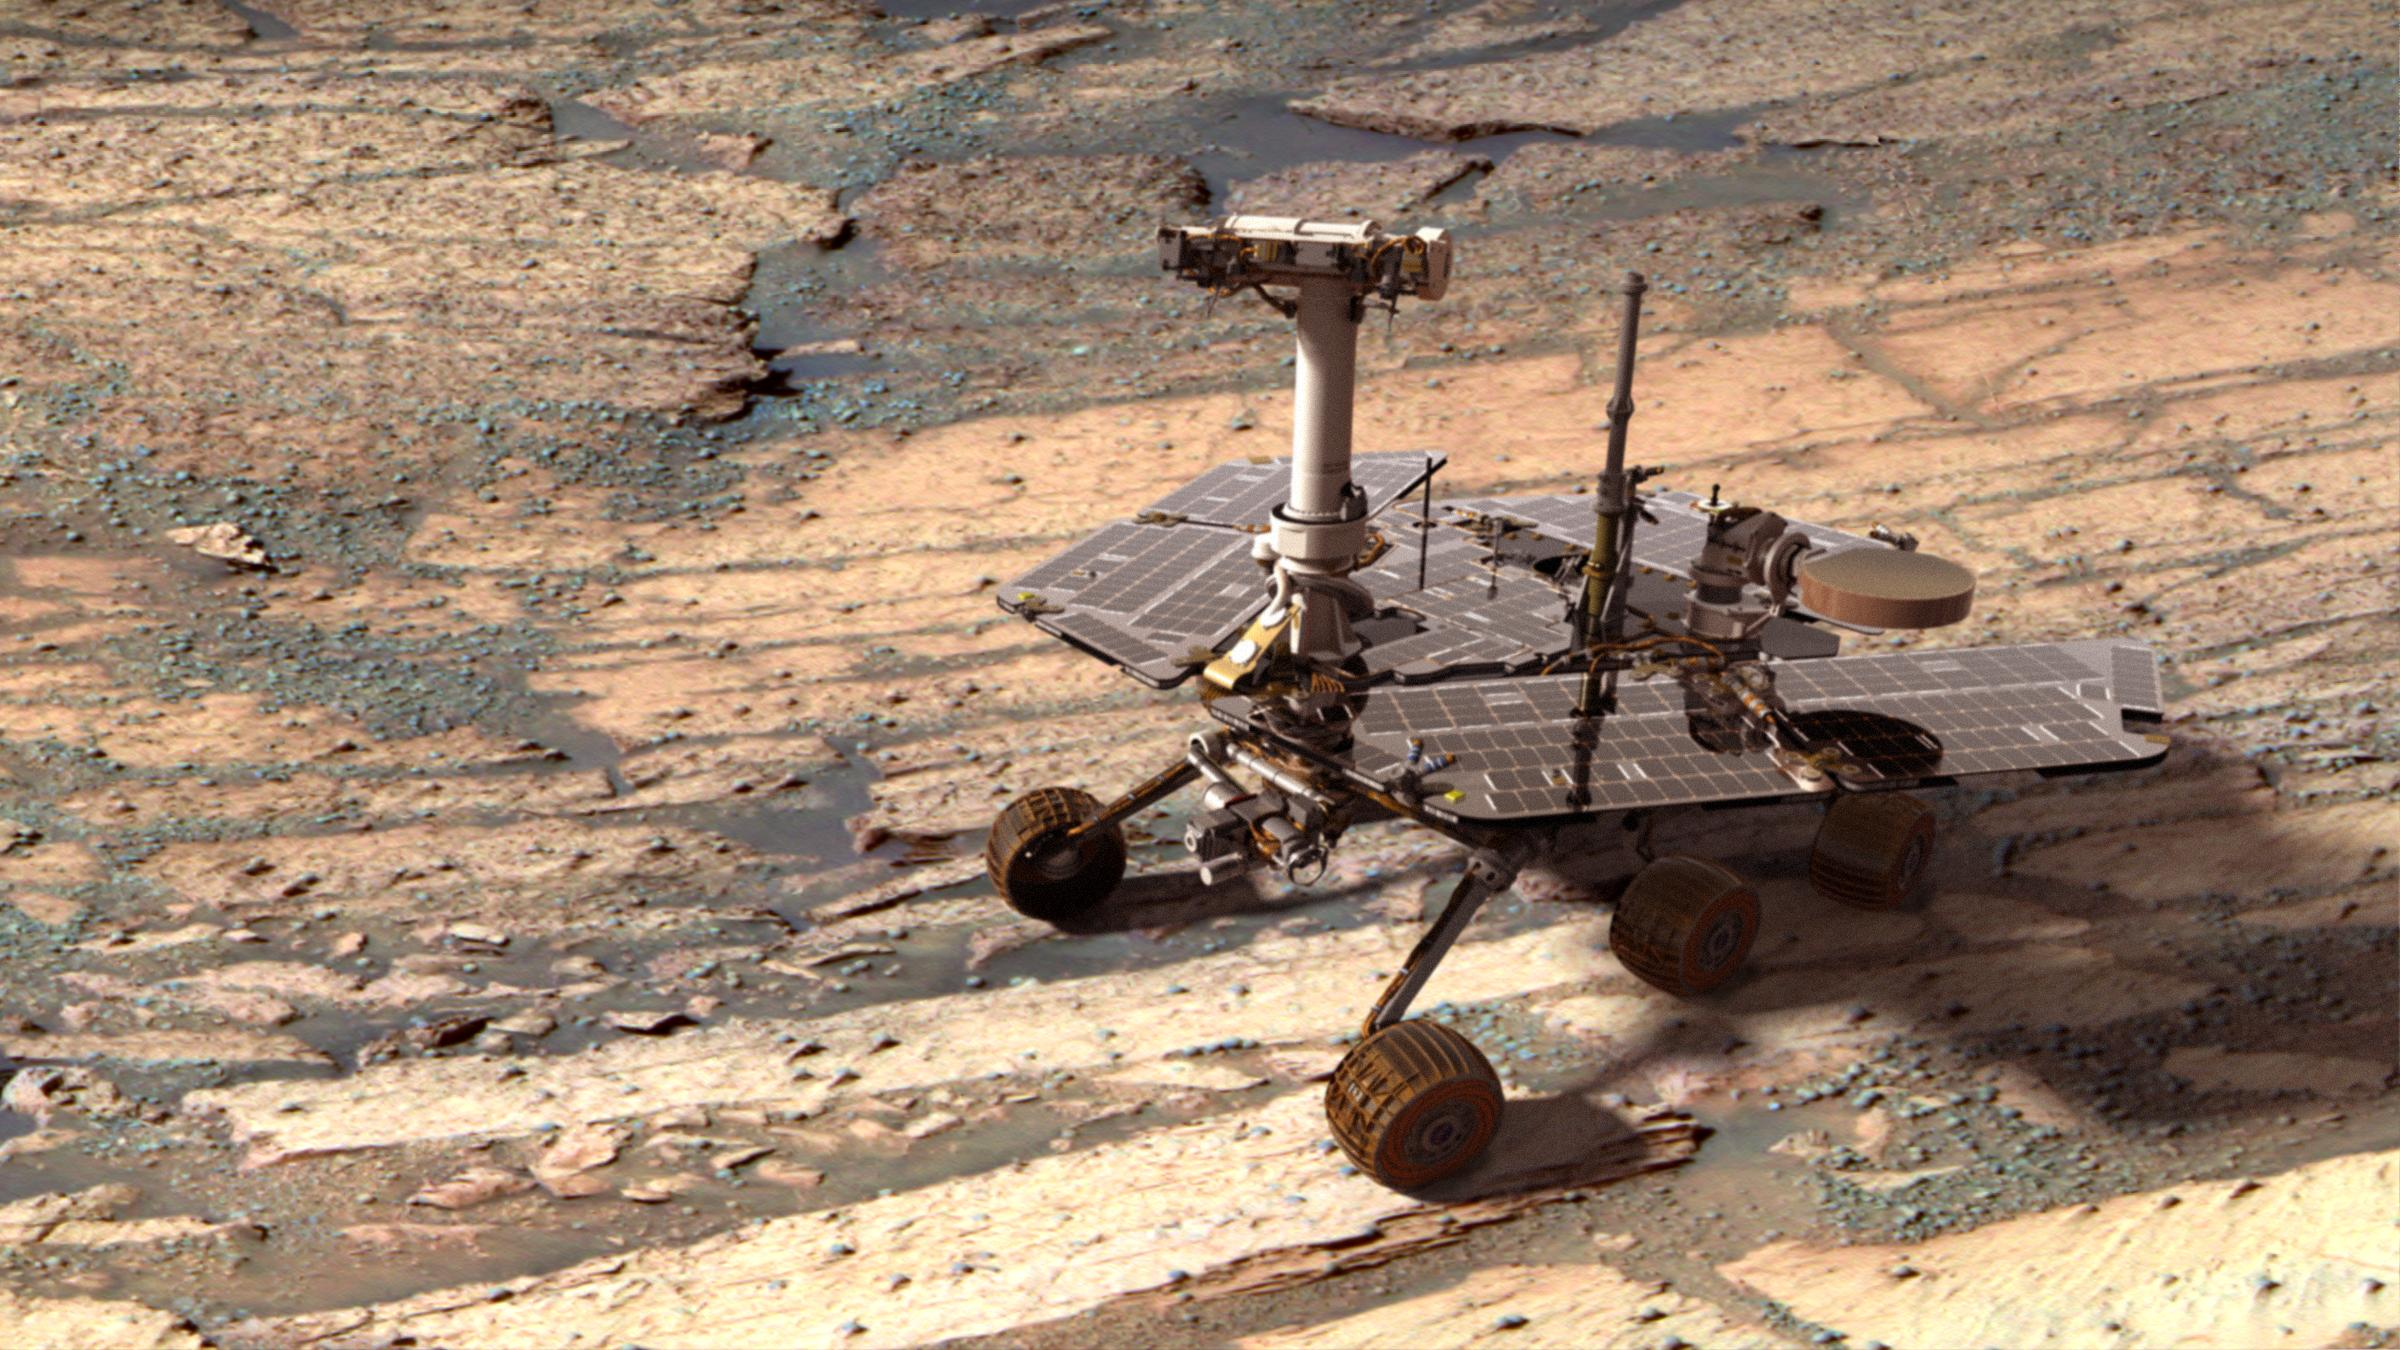 mars rover circuit - photo #13